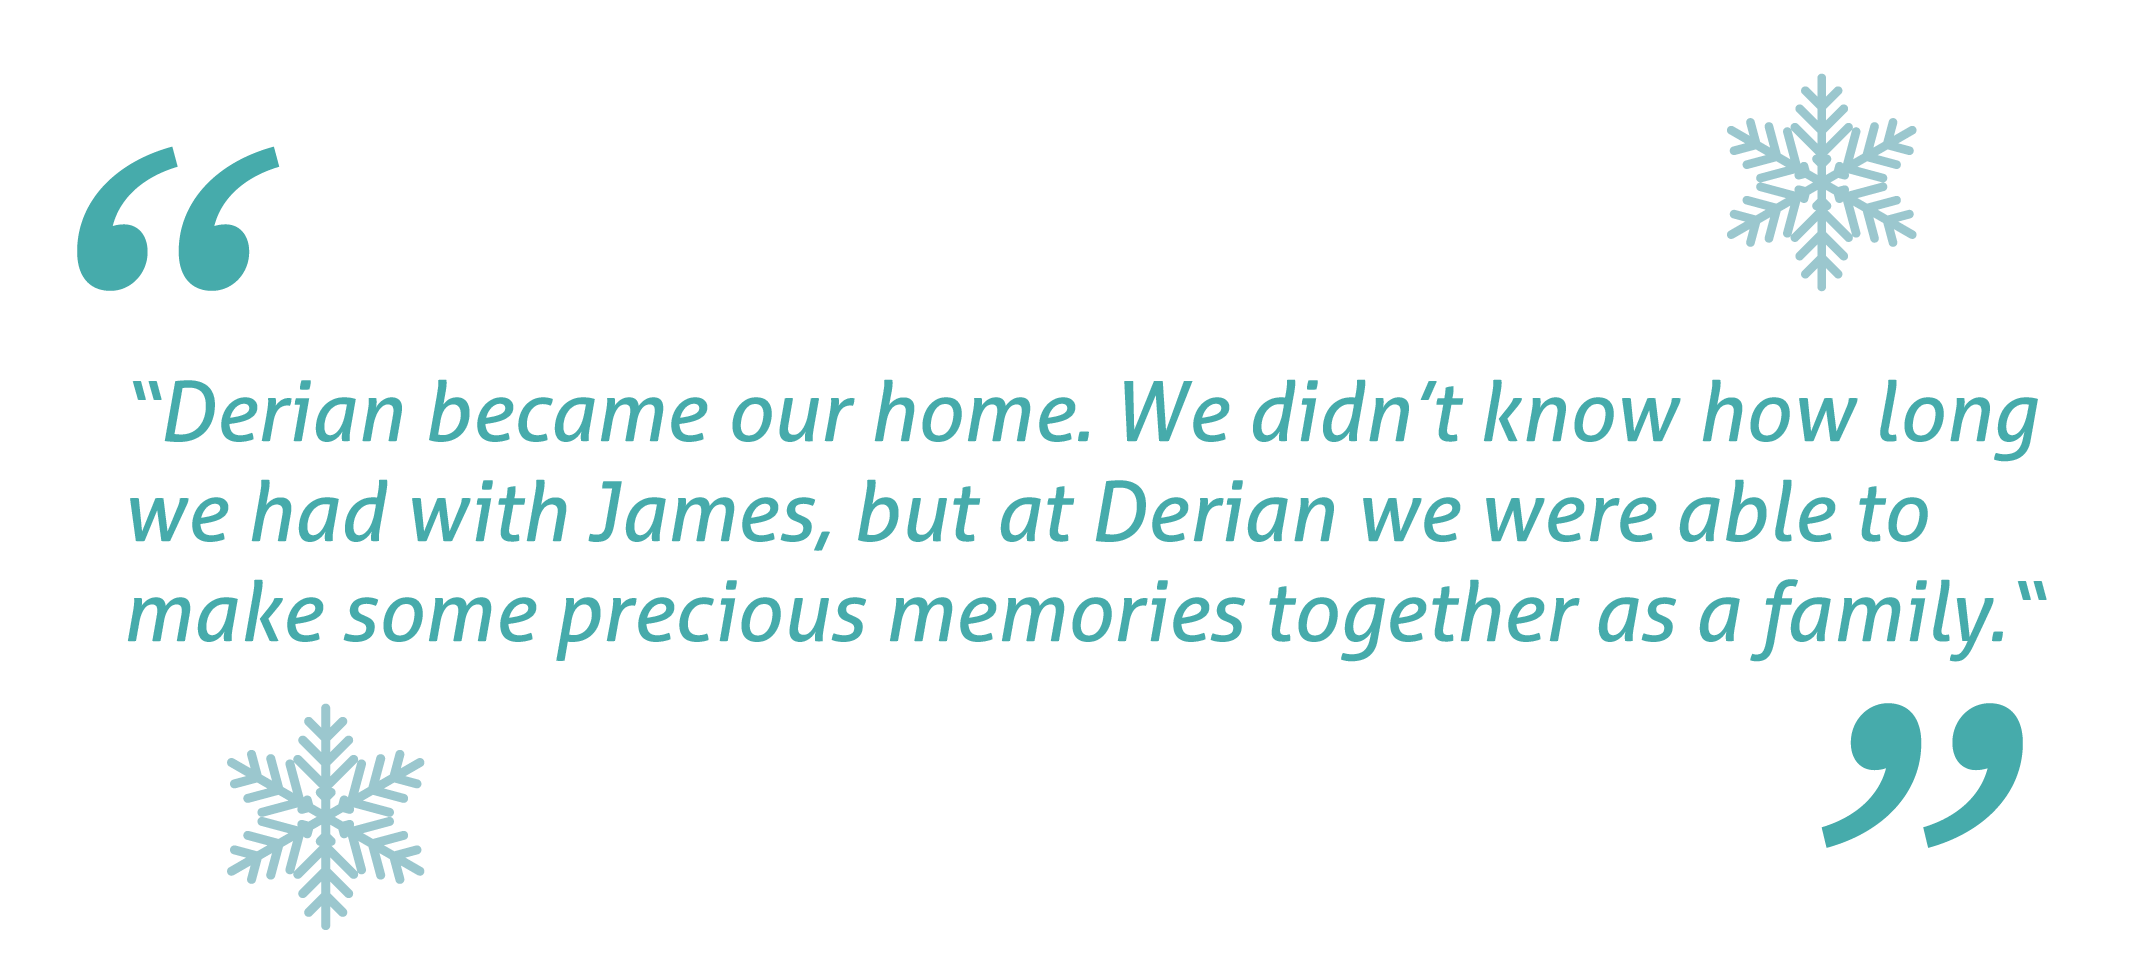 derian house james quote